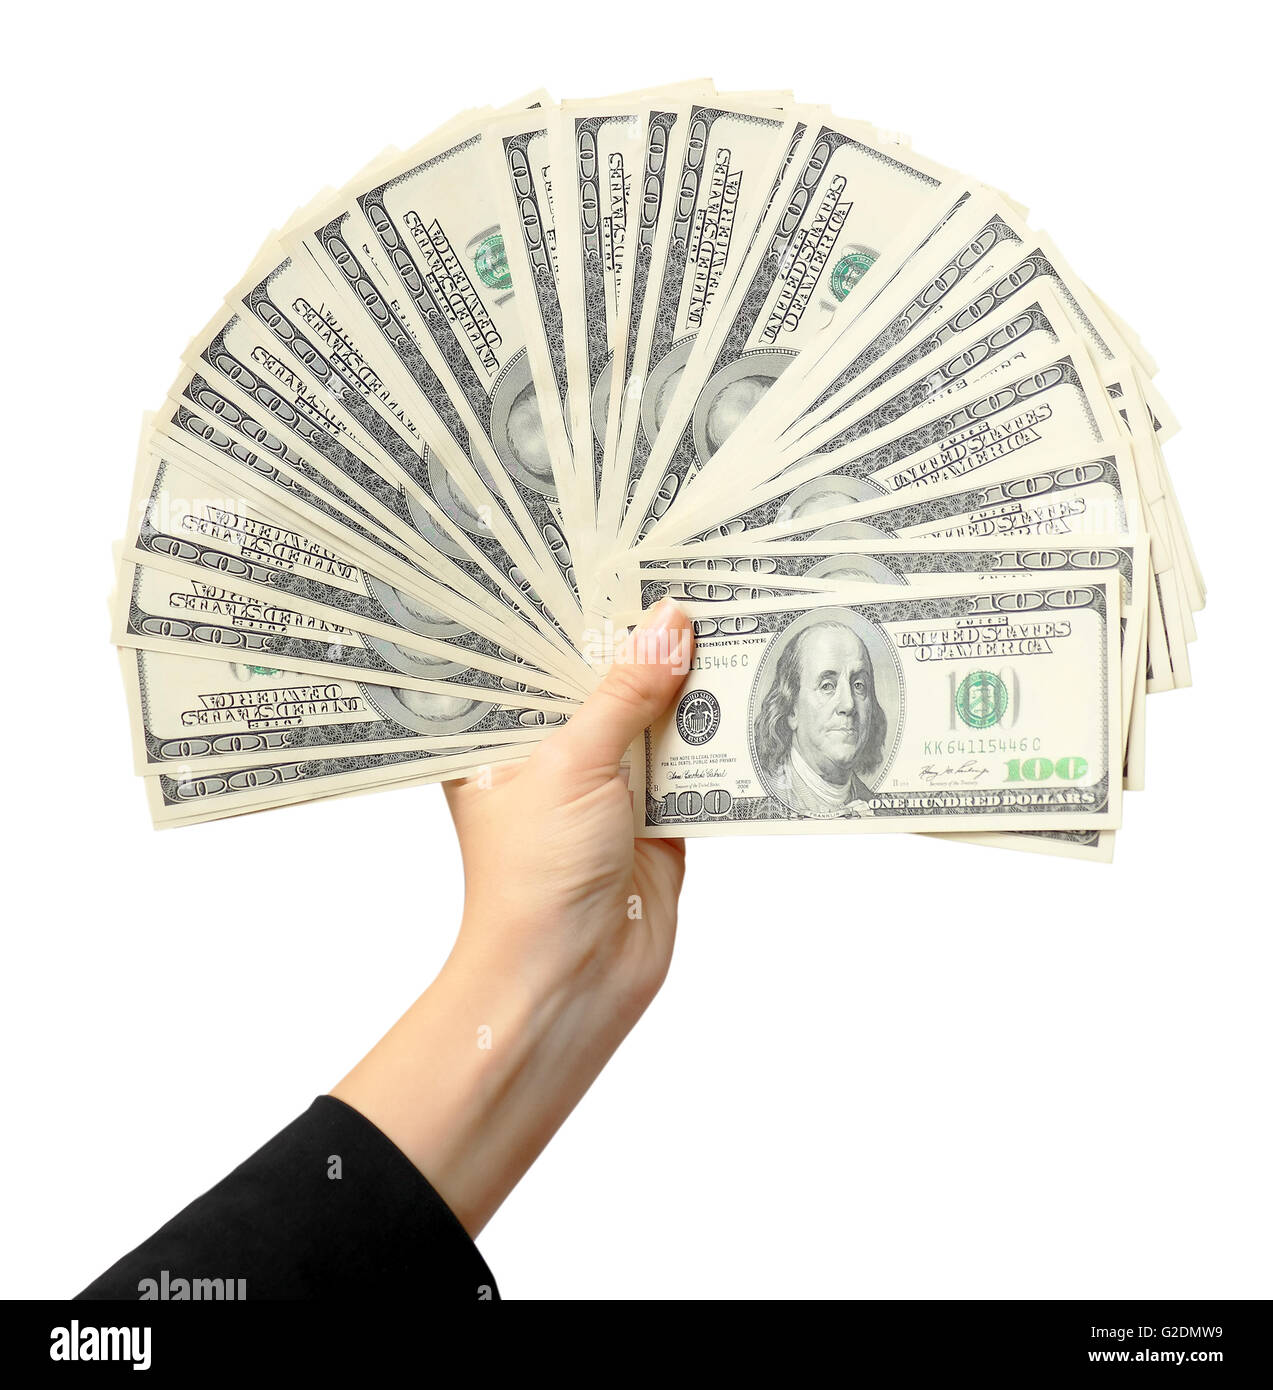 Fan of dollars in a female hand, white background - Stock Image